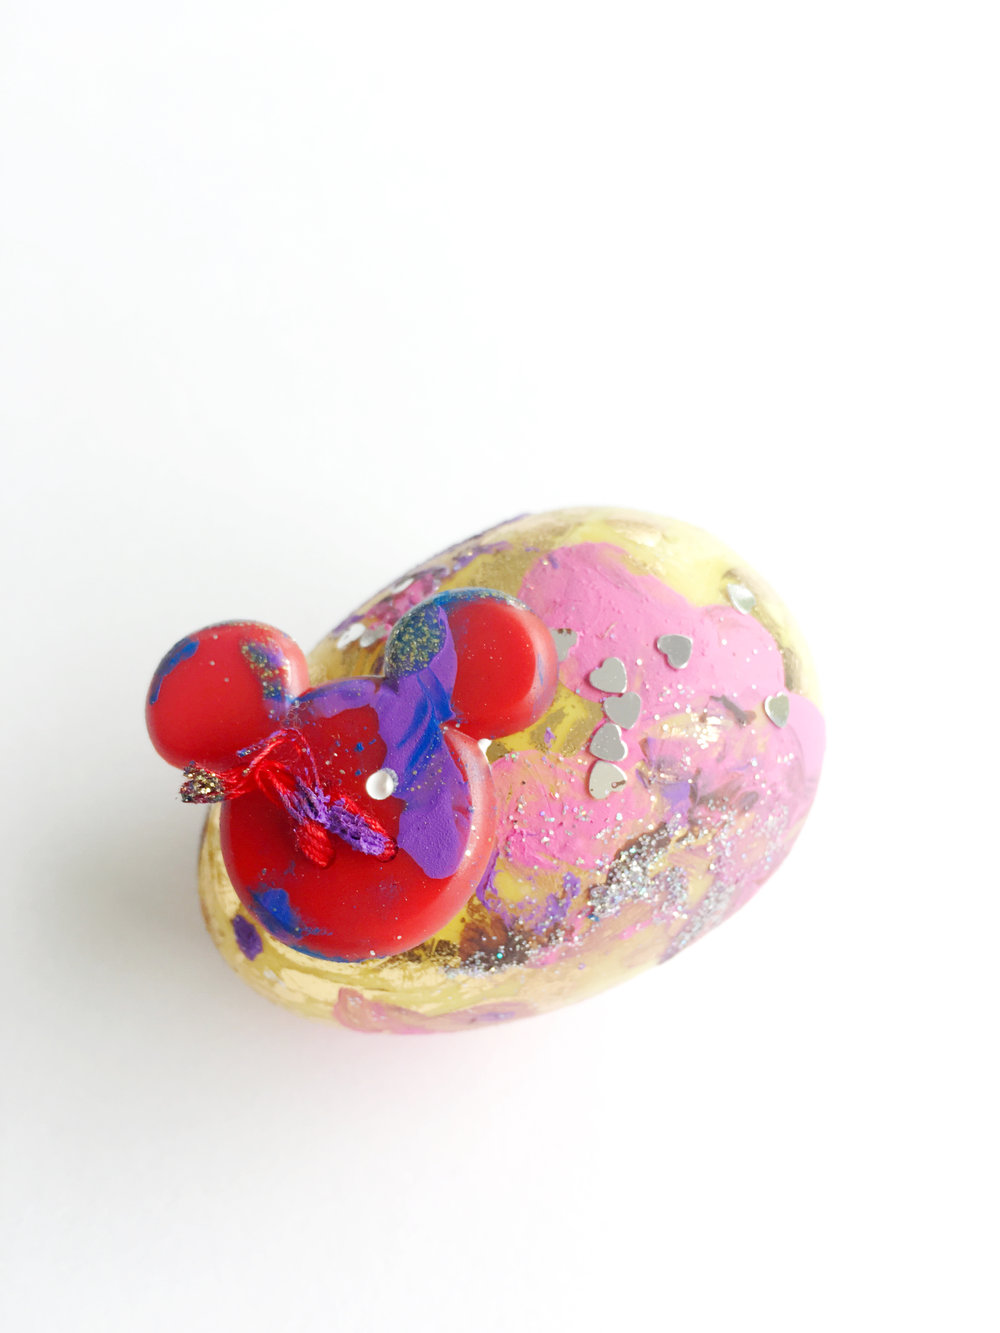 Mixed Media Egg by Dean.